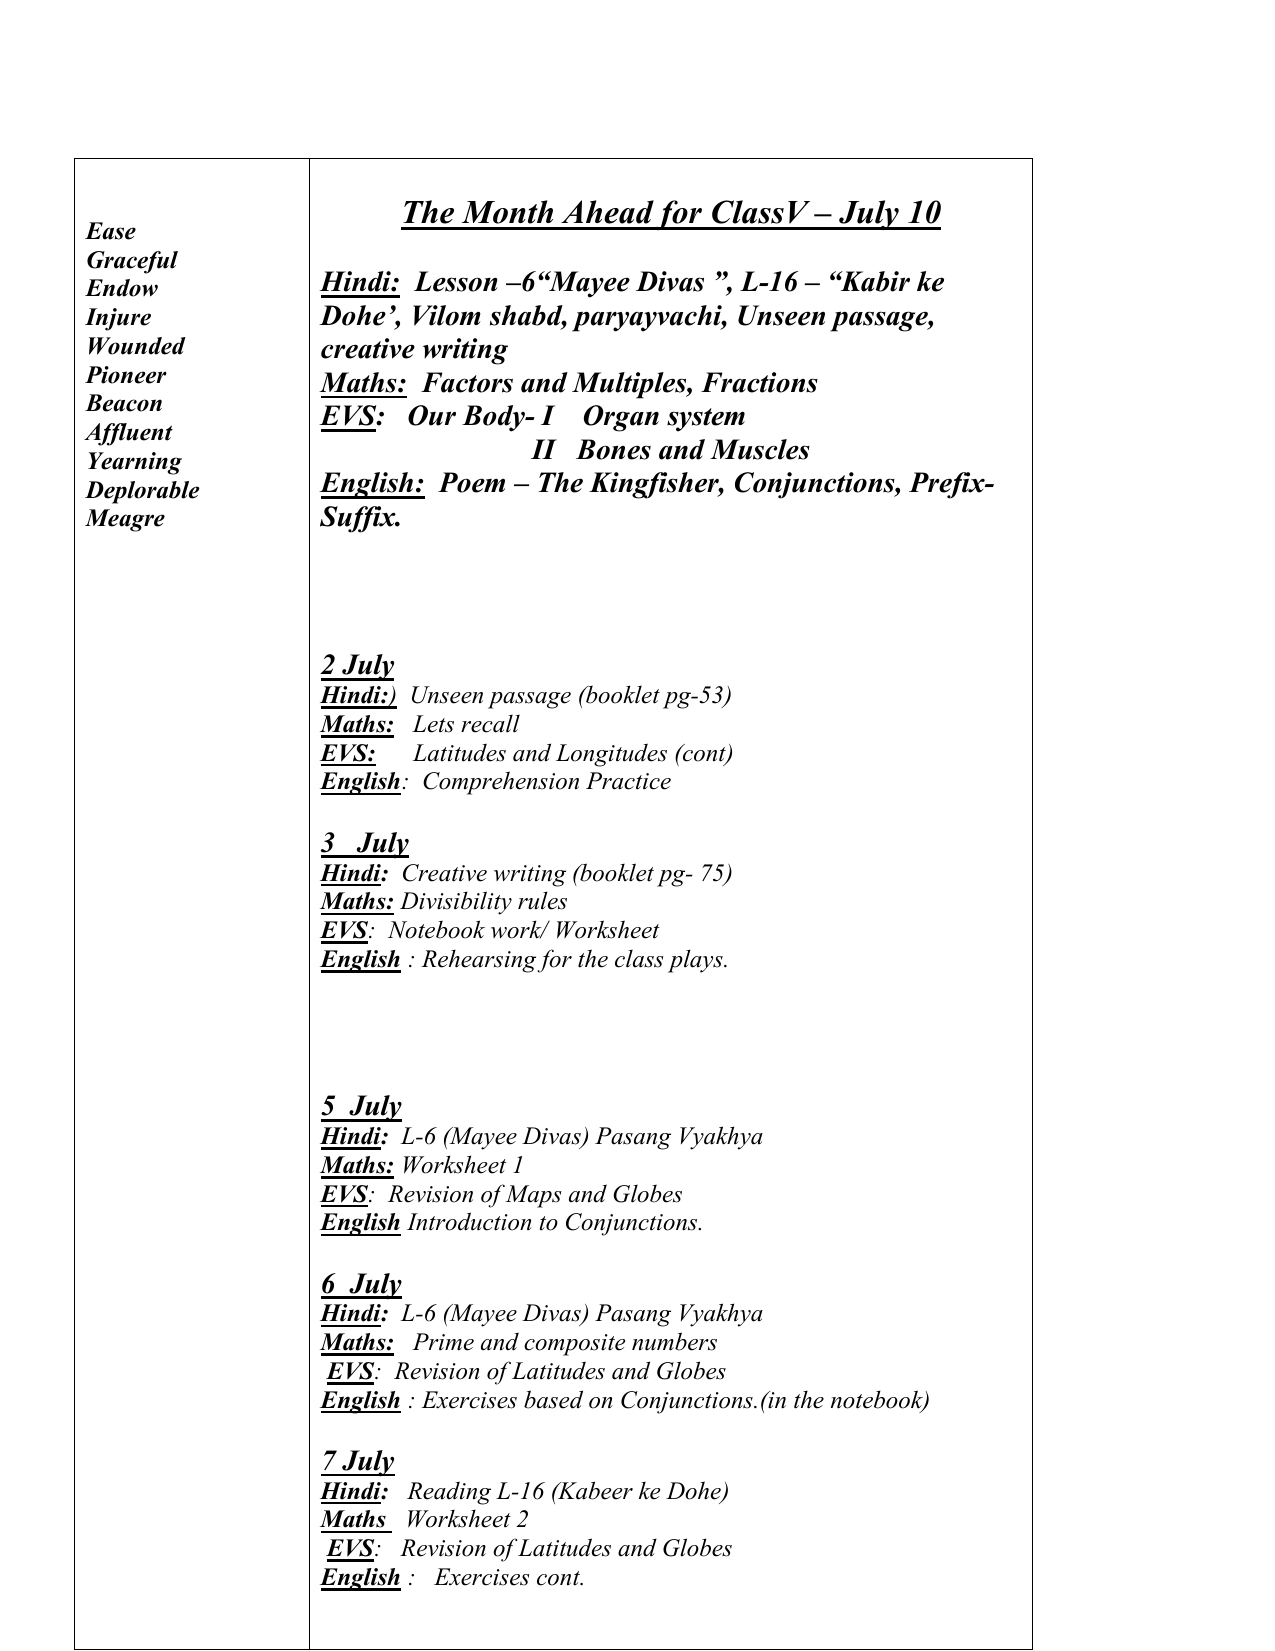 worksheet Hindi Grammar Worksheets For Class 6 monthly planner class v